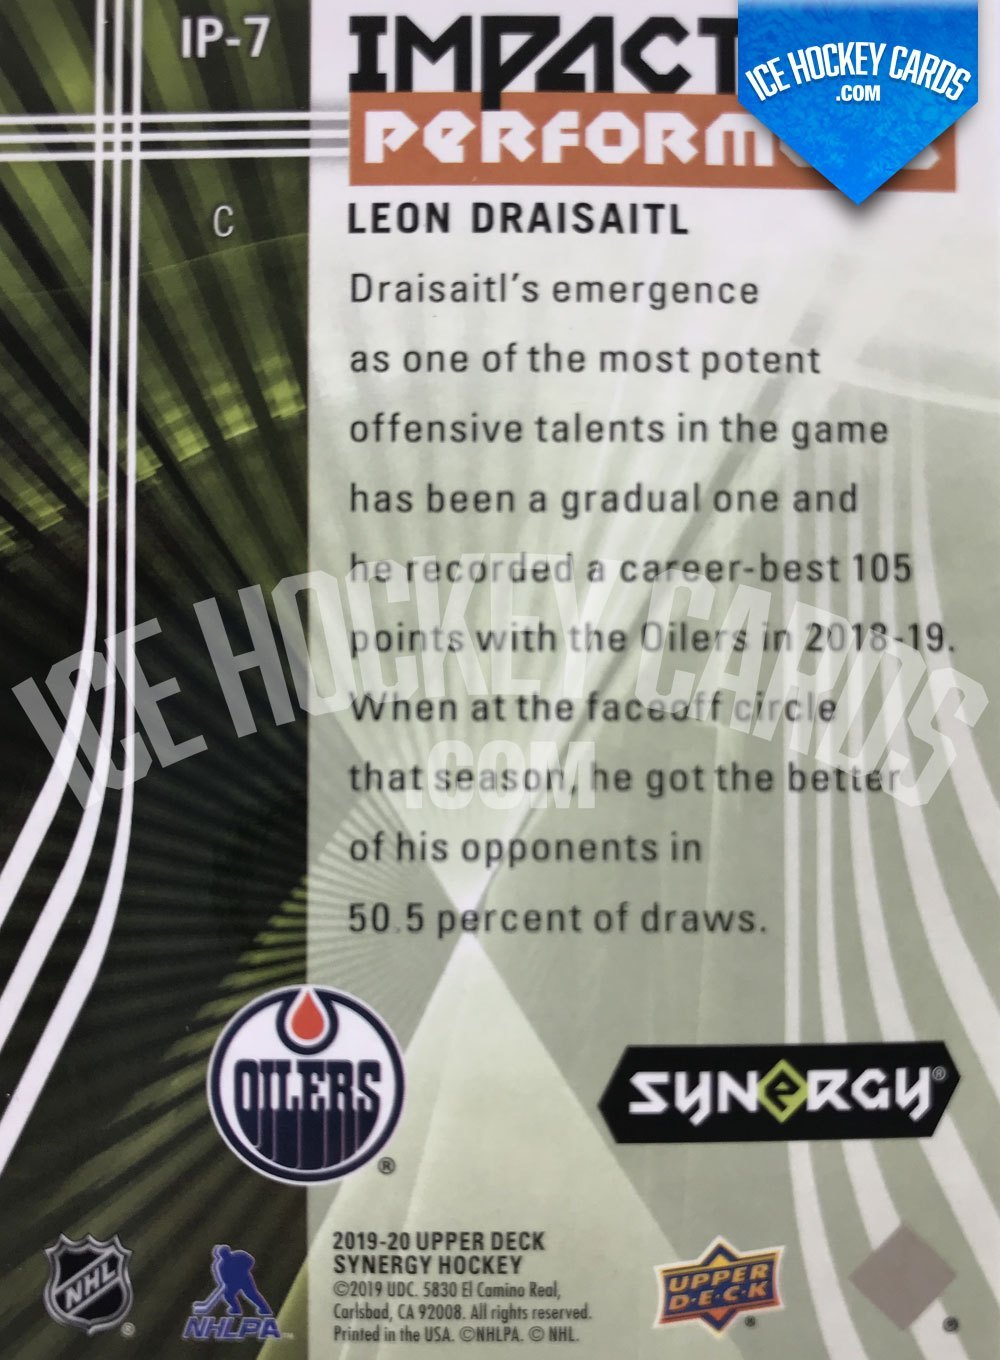 Upper Deck - Synergy 19-20 - Leon Draisaitl Impactful Performers back